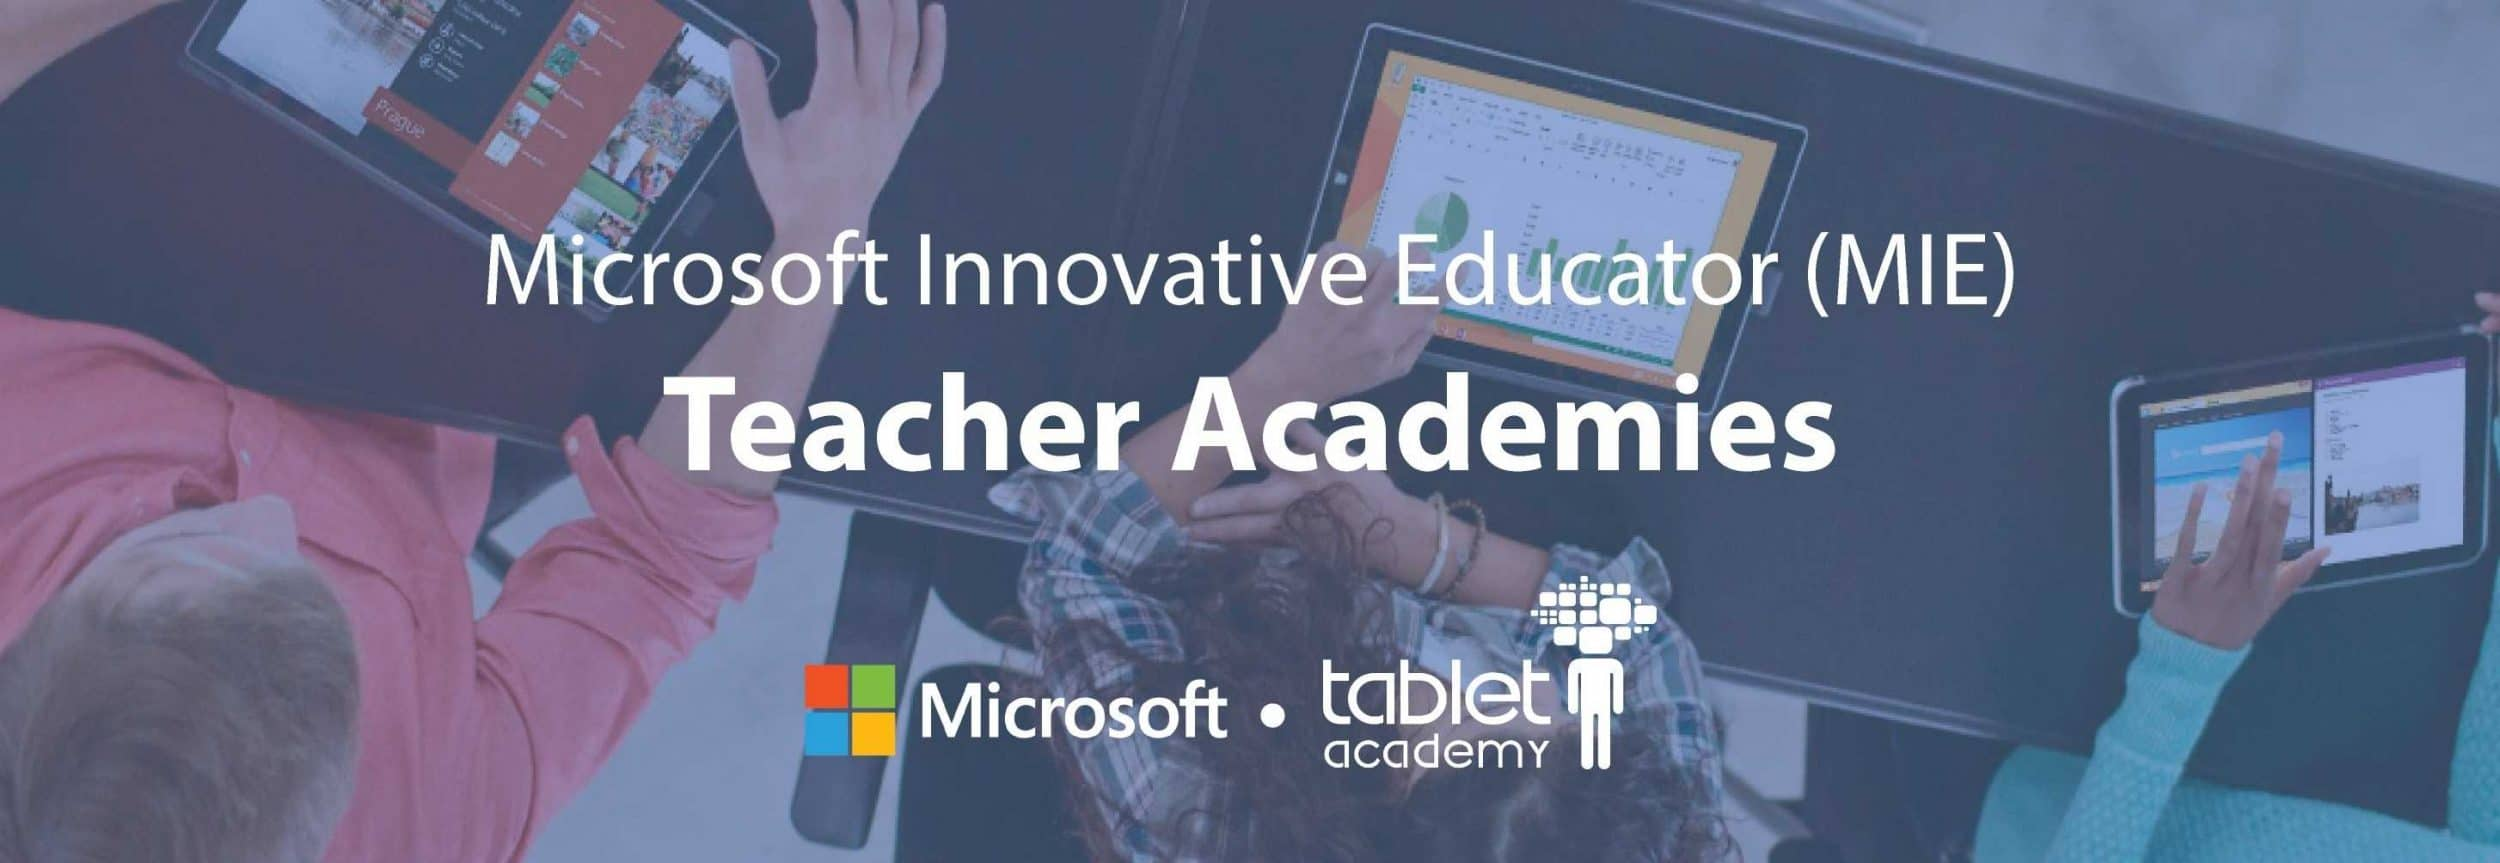 MIE Microsoft Innovative Educator - Teacher Academies